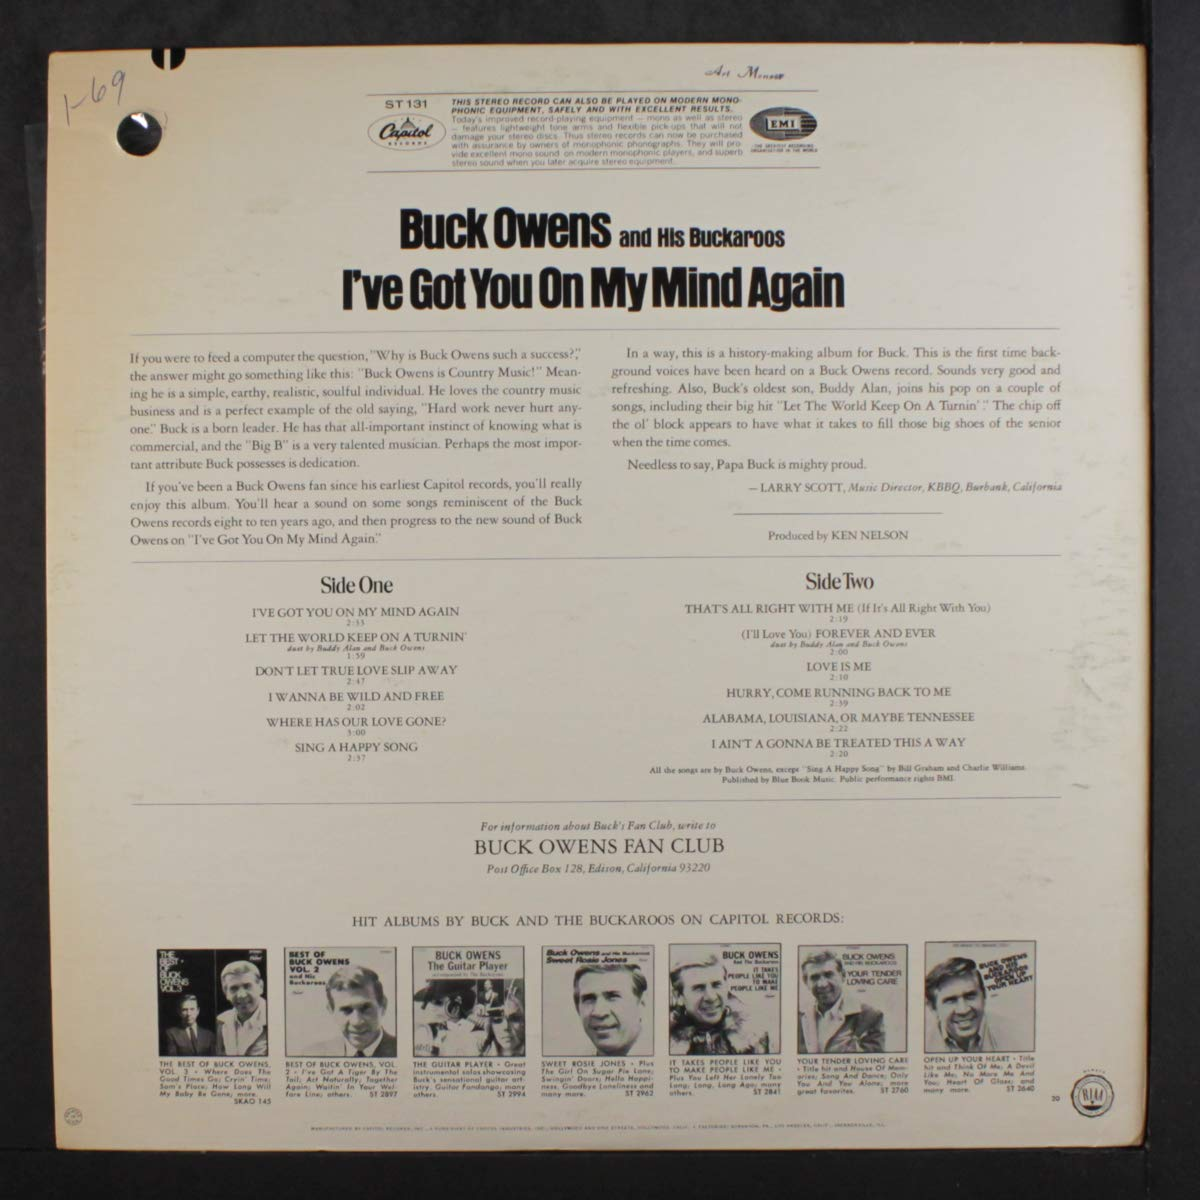 BUCK OWENS - ive got you on my mind again LP - Amazon.com Music